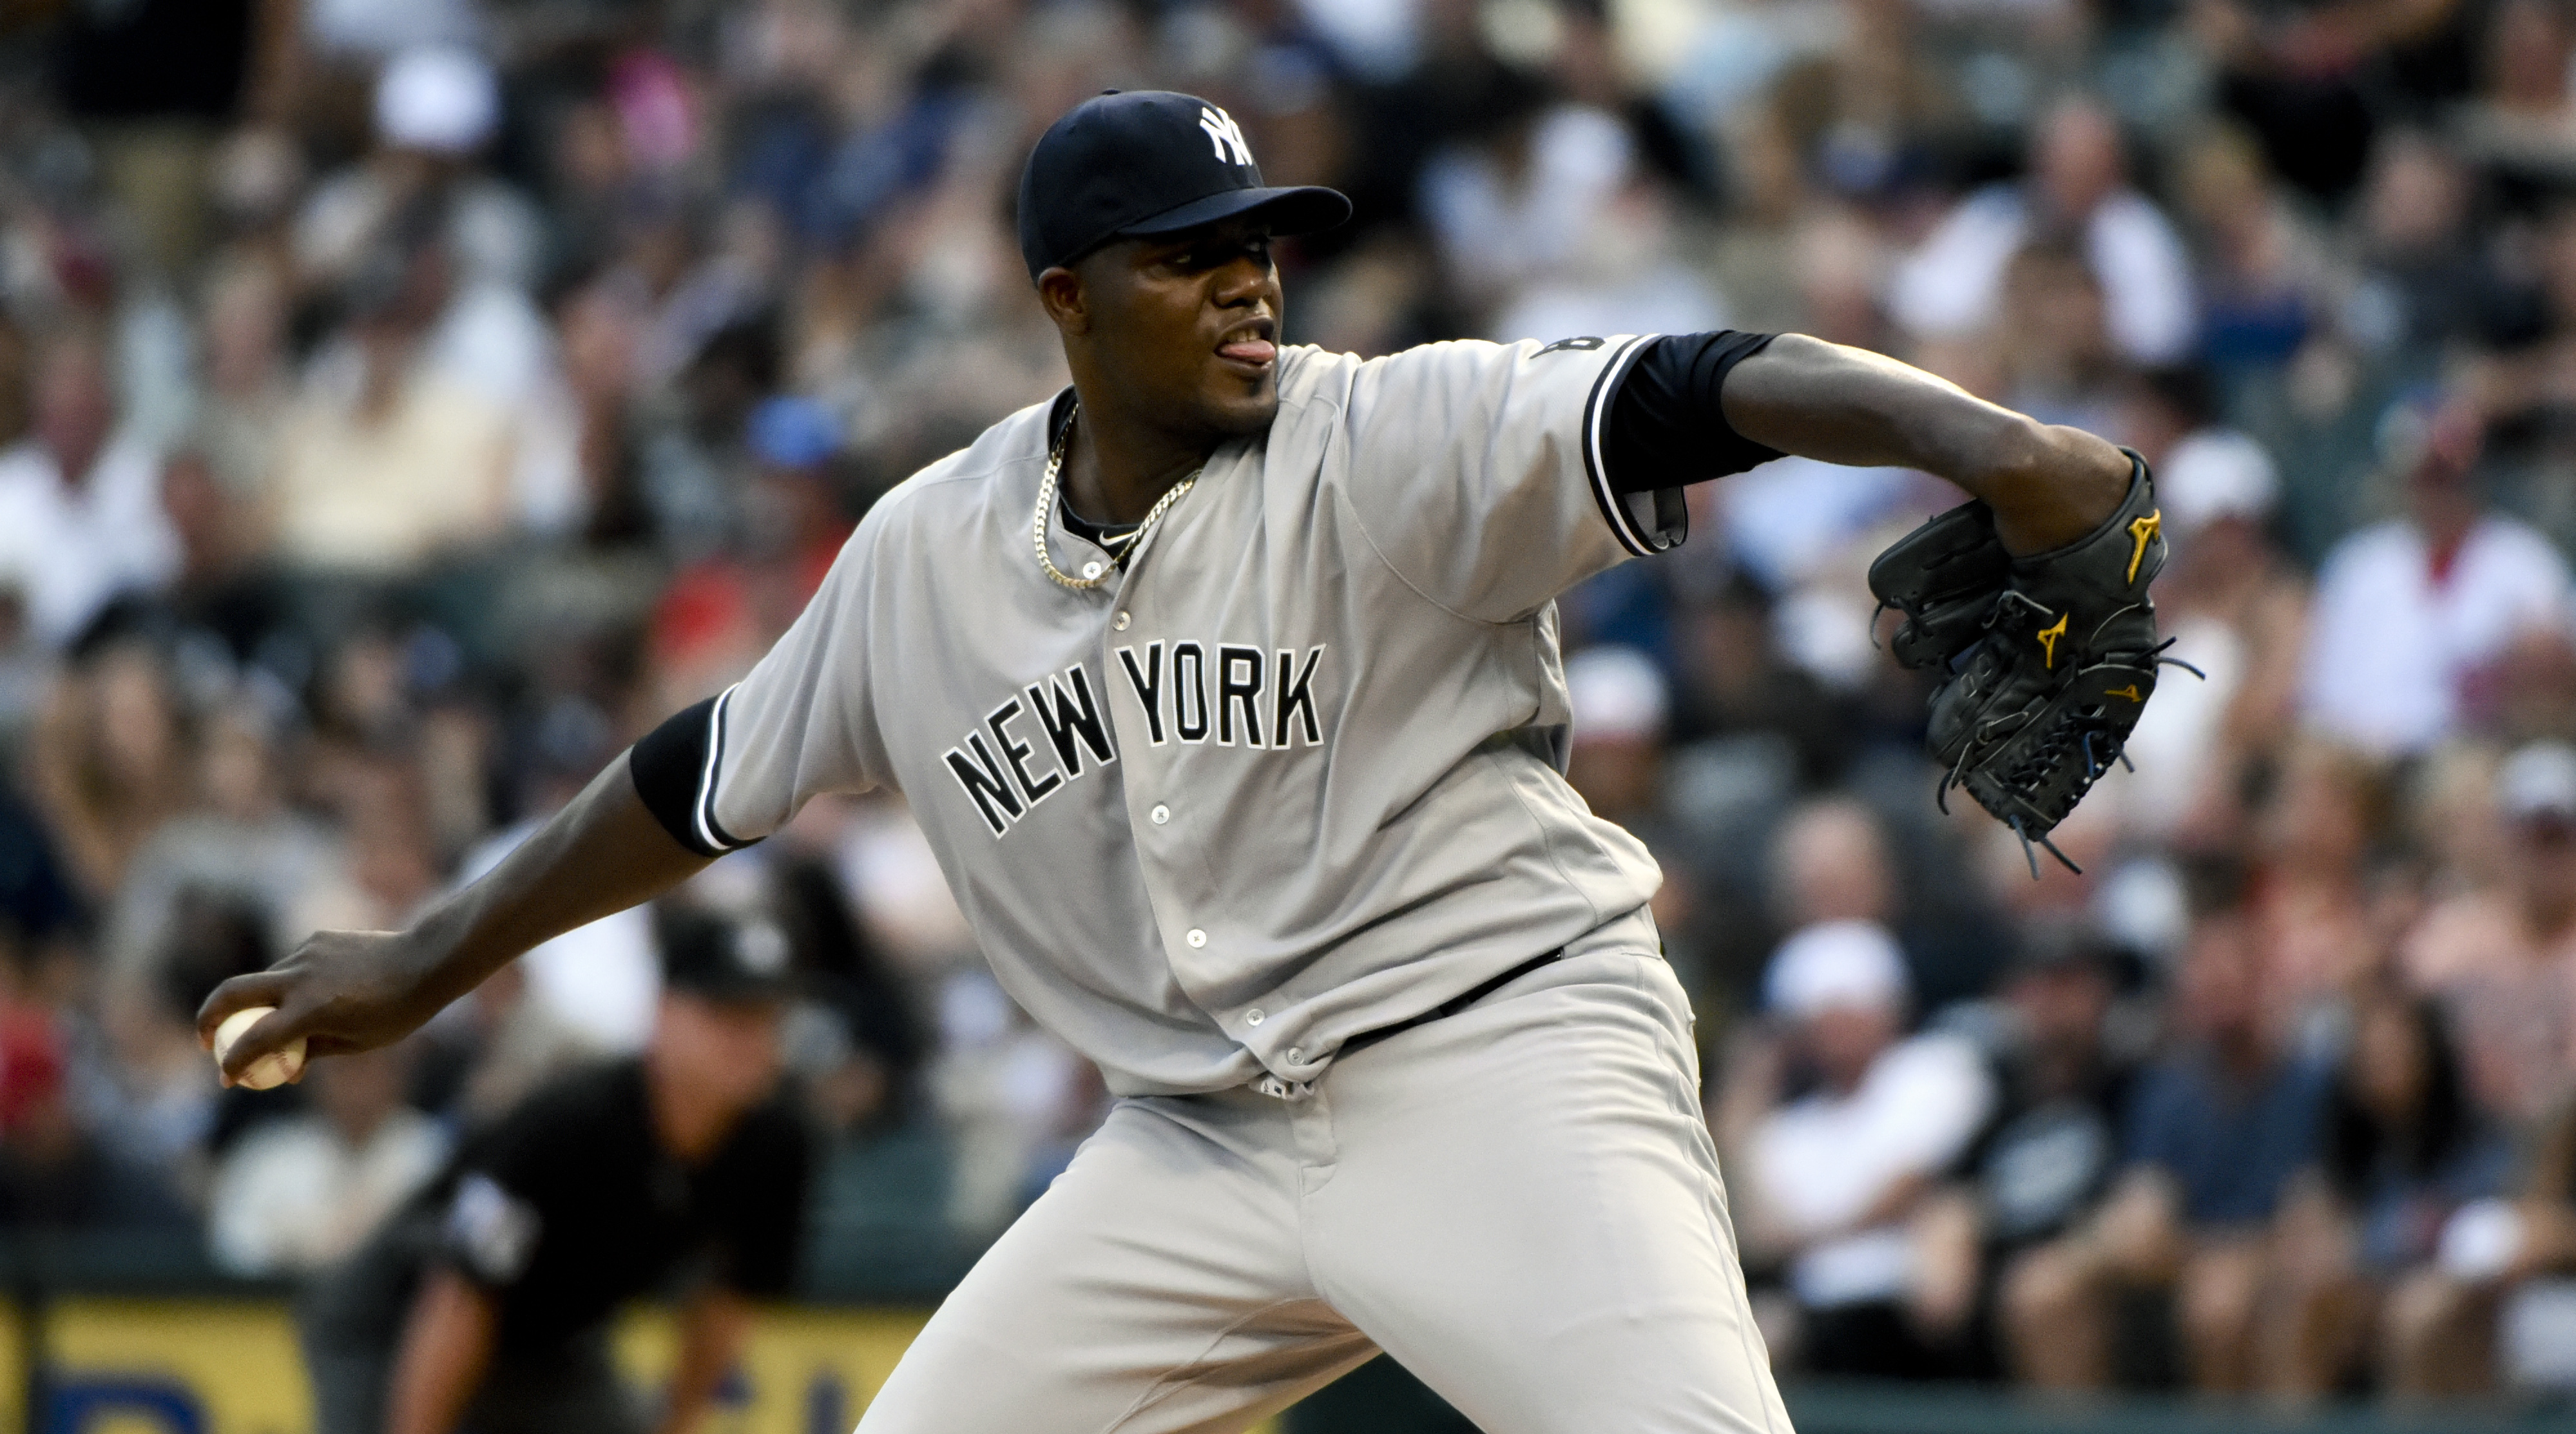 New York Yankees starting pitcher Michael Pineda delivers against the Chicago White Sox during the first inning of a baseball game in Chicago on Wednesday, July 6, 2016. (AP Photo/Matt Marton)